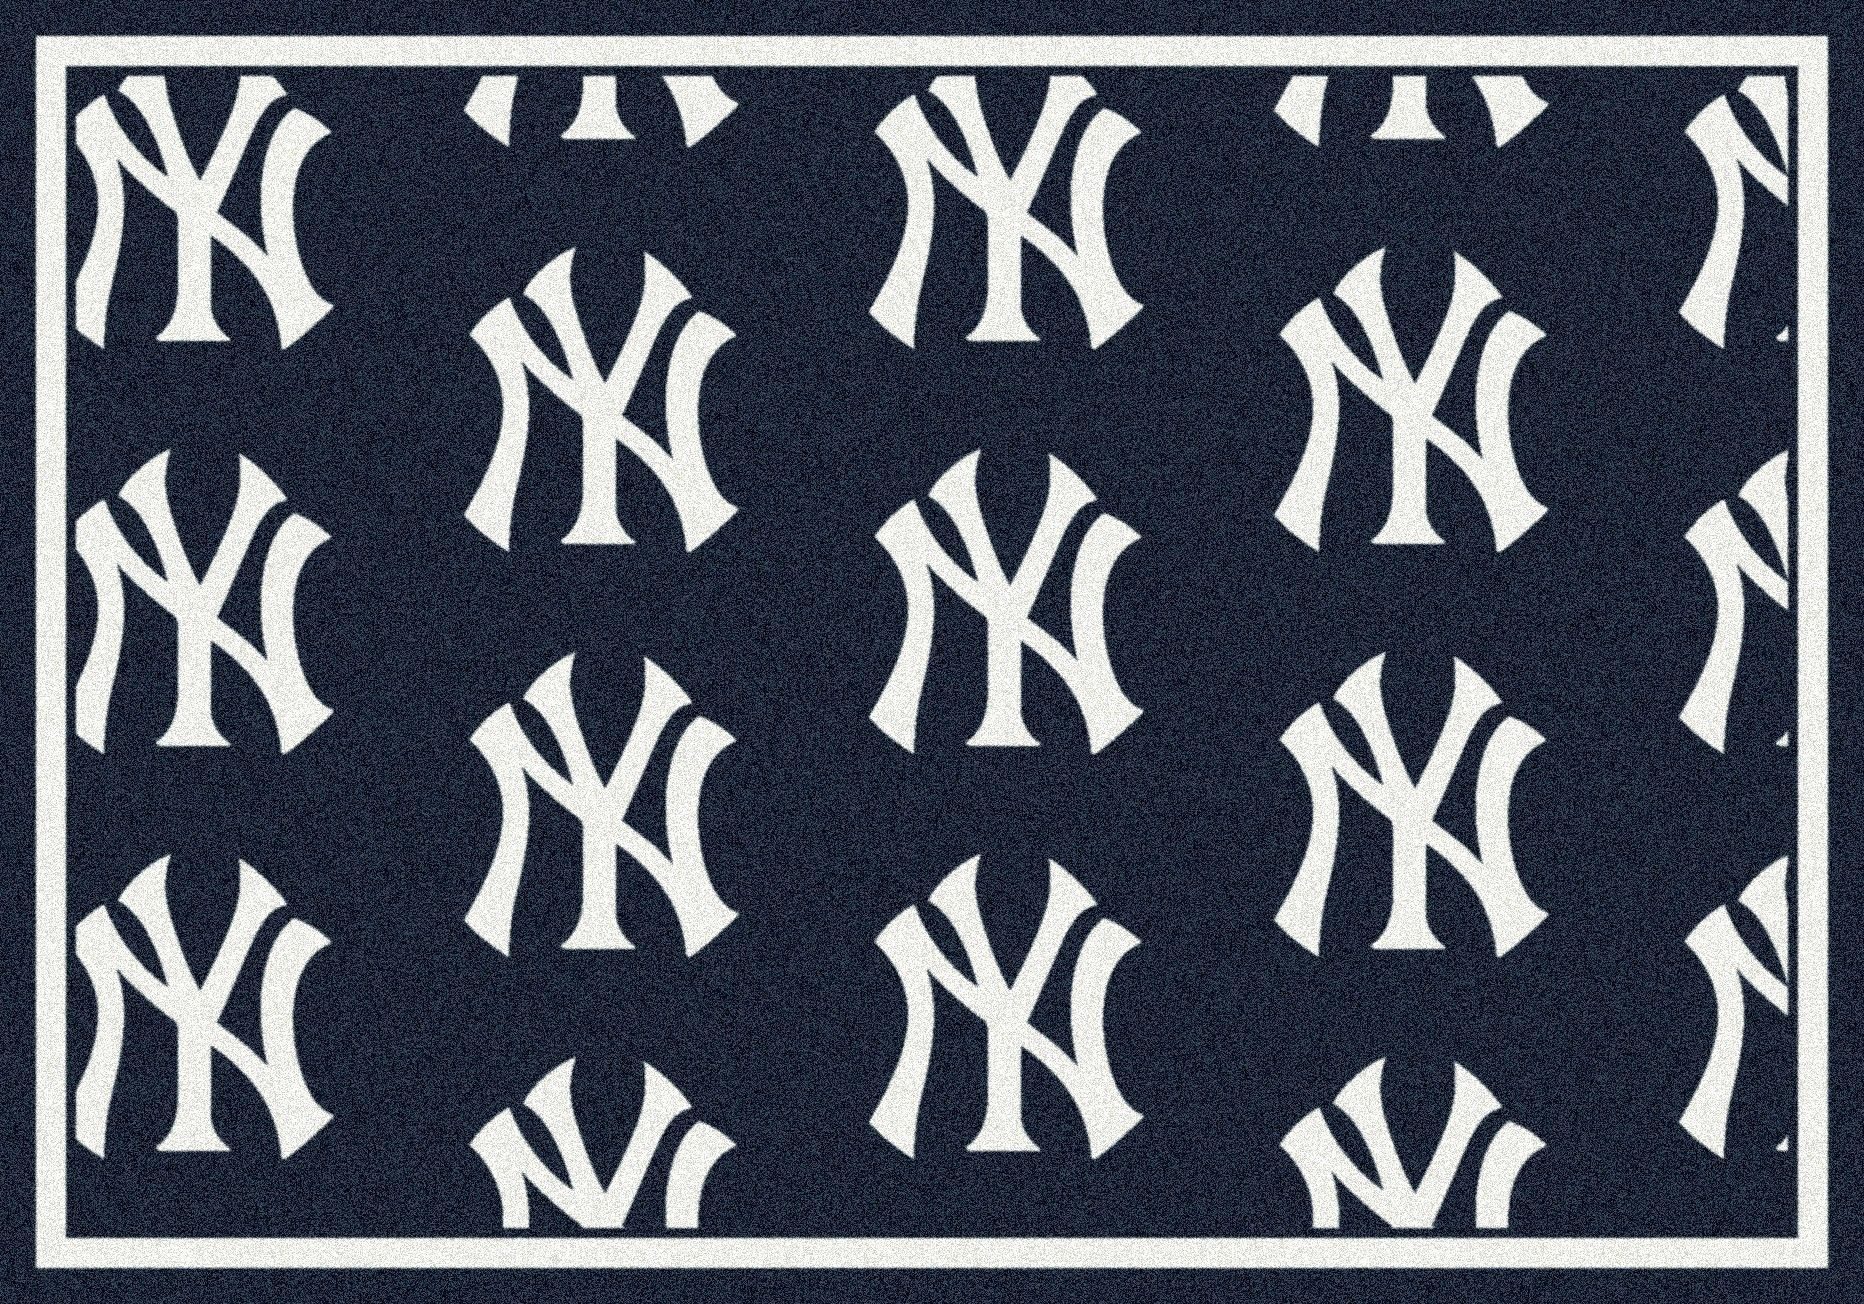 30 Image For Gadgets Yankees